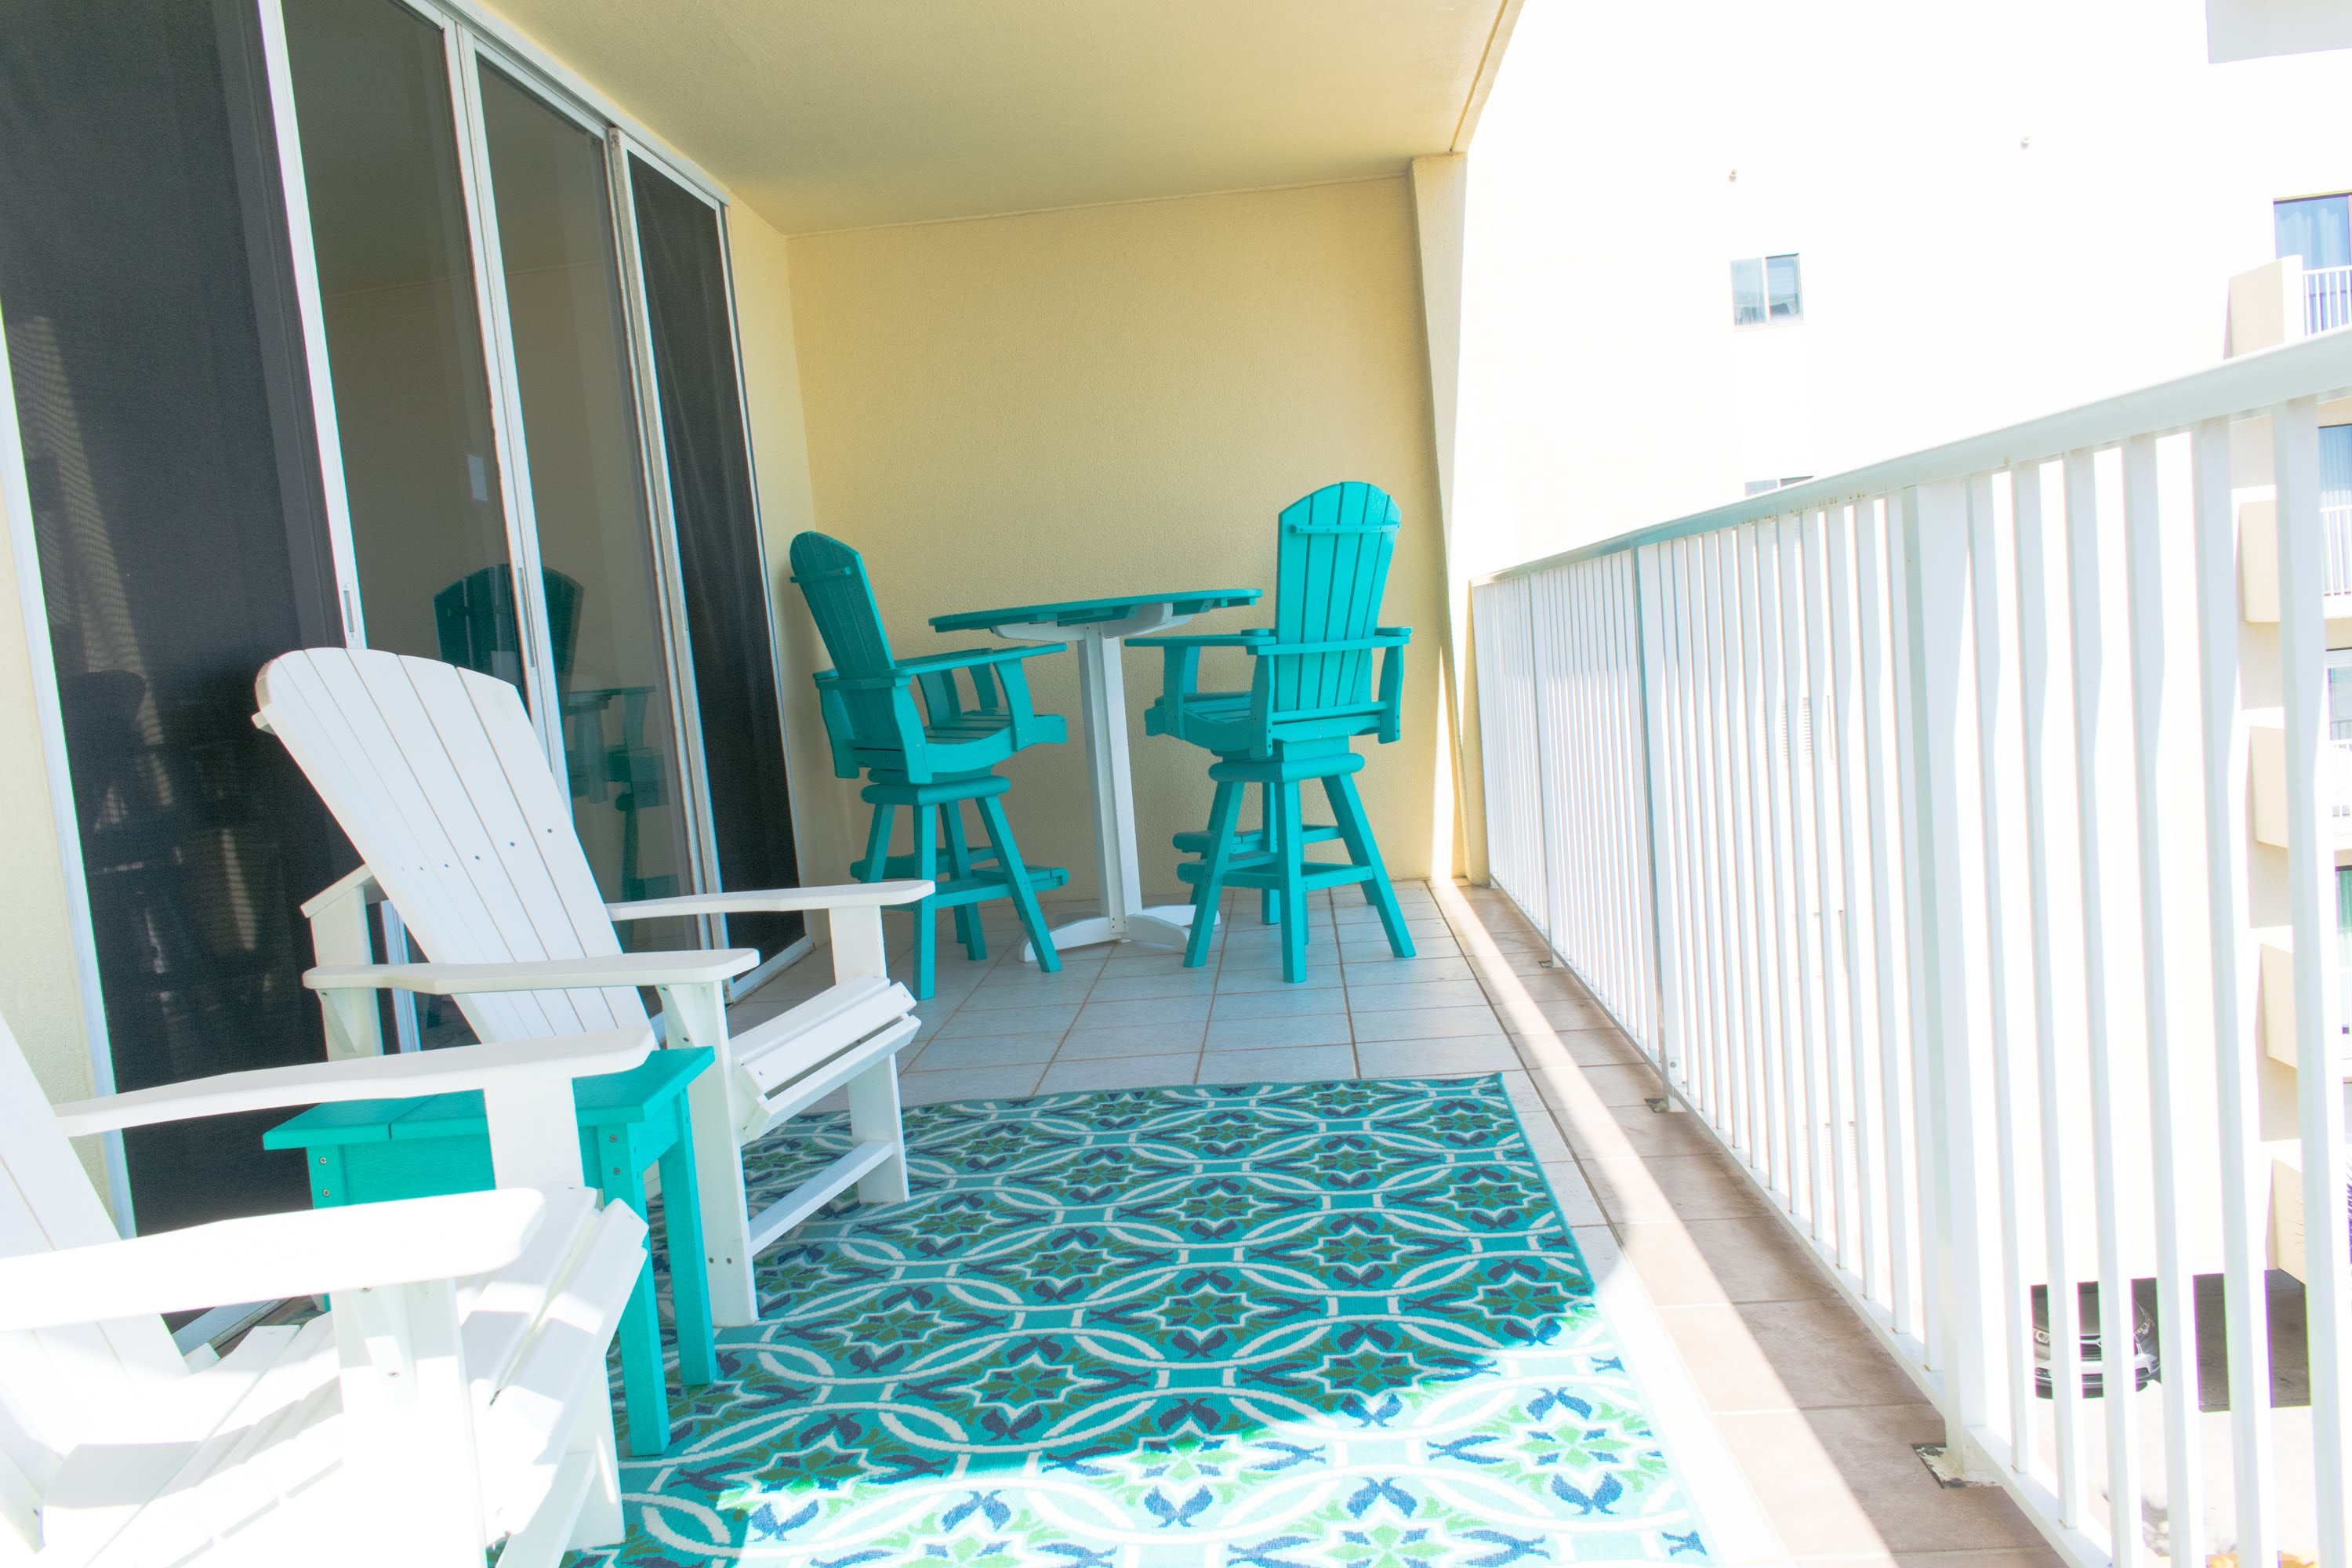 Photo-27-New-Adirondack-chairs-table-and-rug